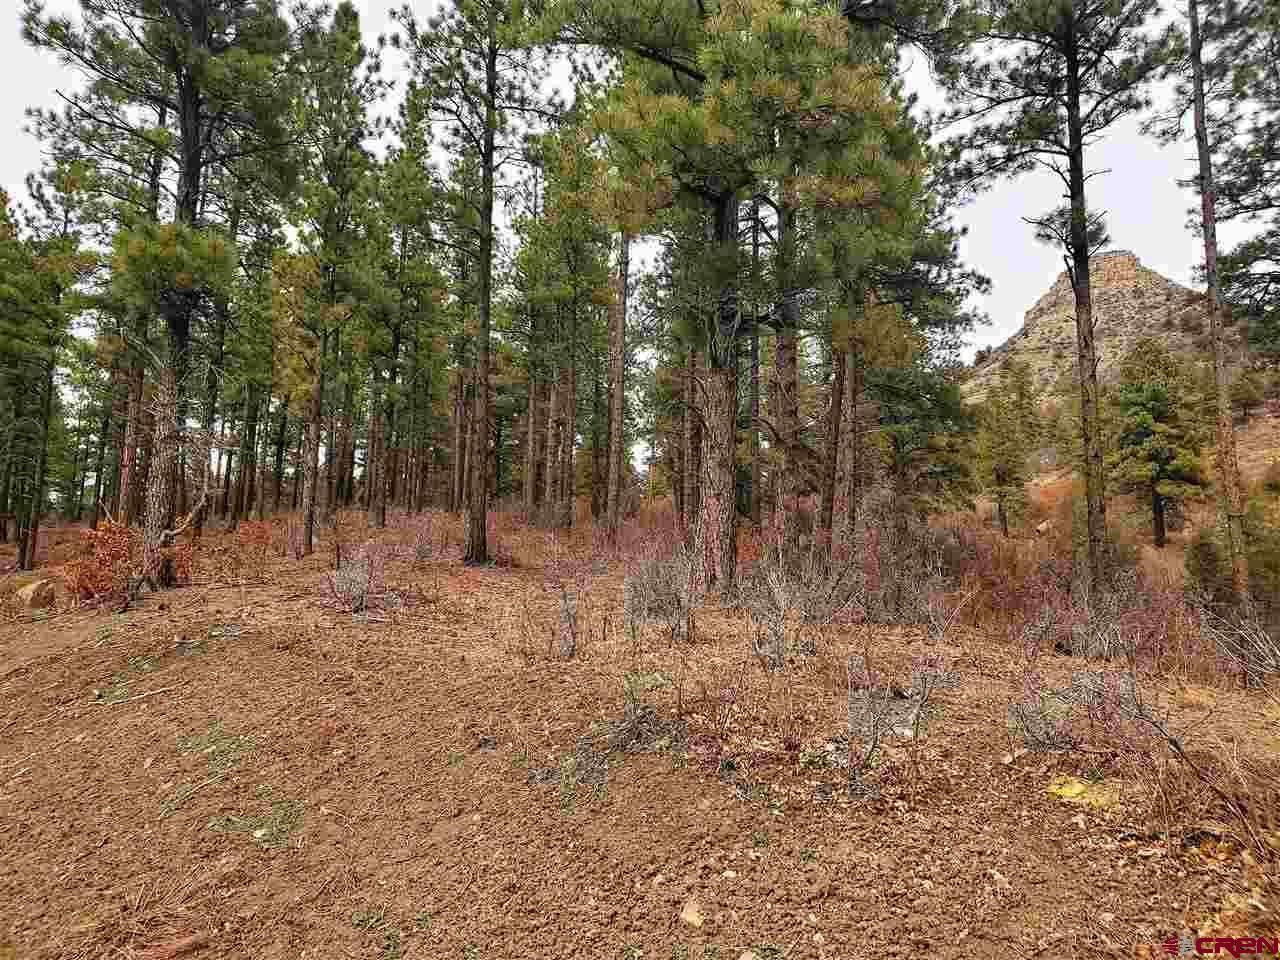 Photo of (Lot 87-1) 74 Bell Flower Court, Durango, CO 81301 (MLS # 767541)